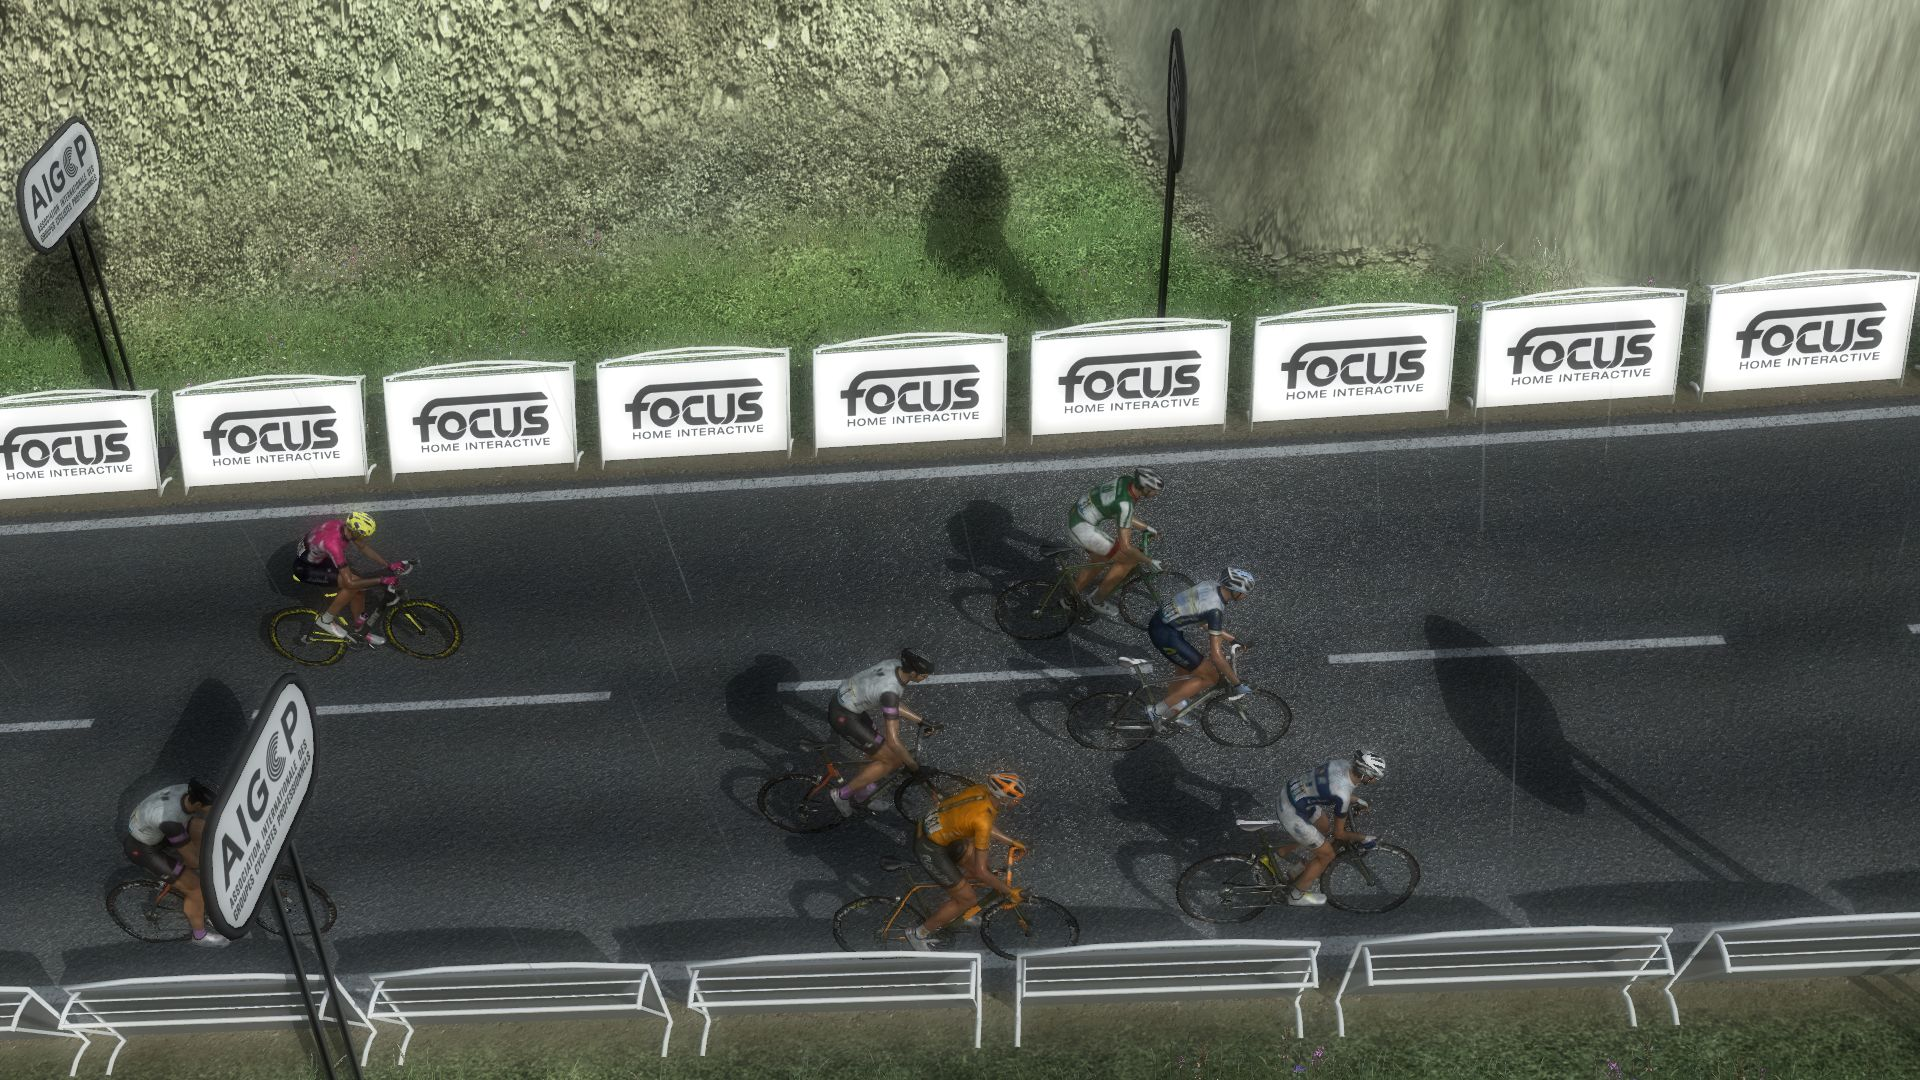 pcmdaily.com/images/mg/2019/Races/C2/CSS/CSS%2013.jpg